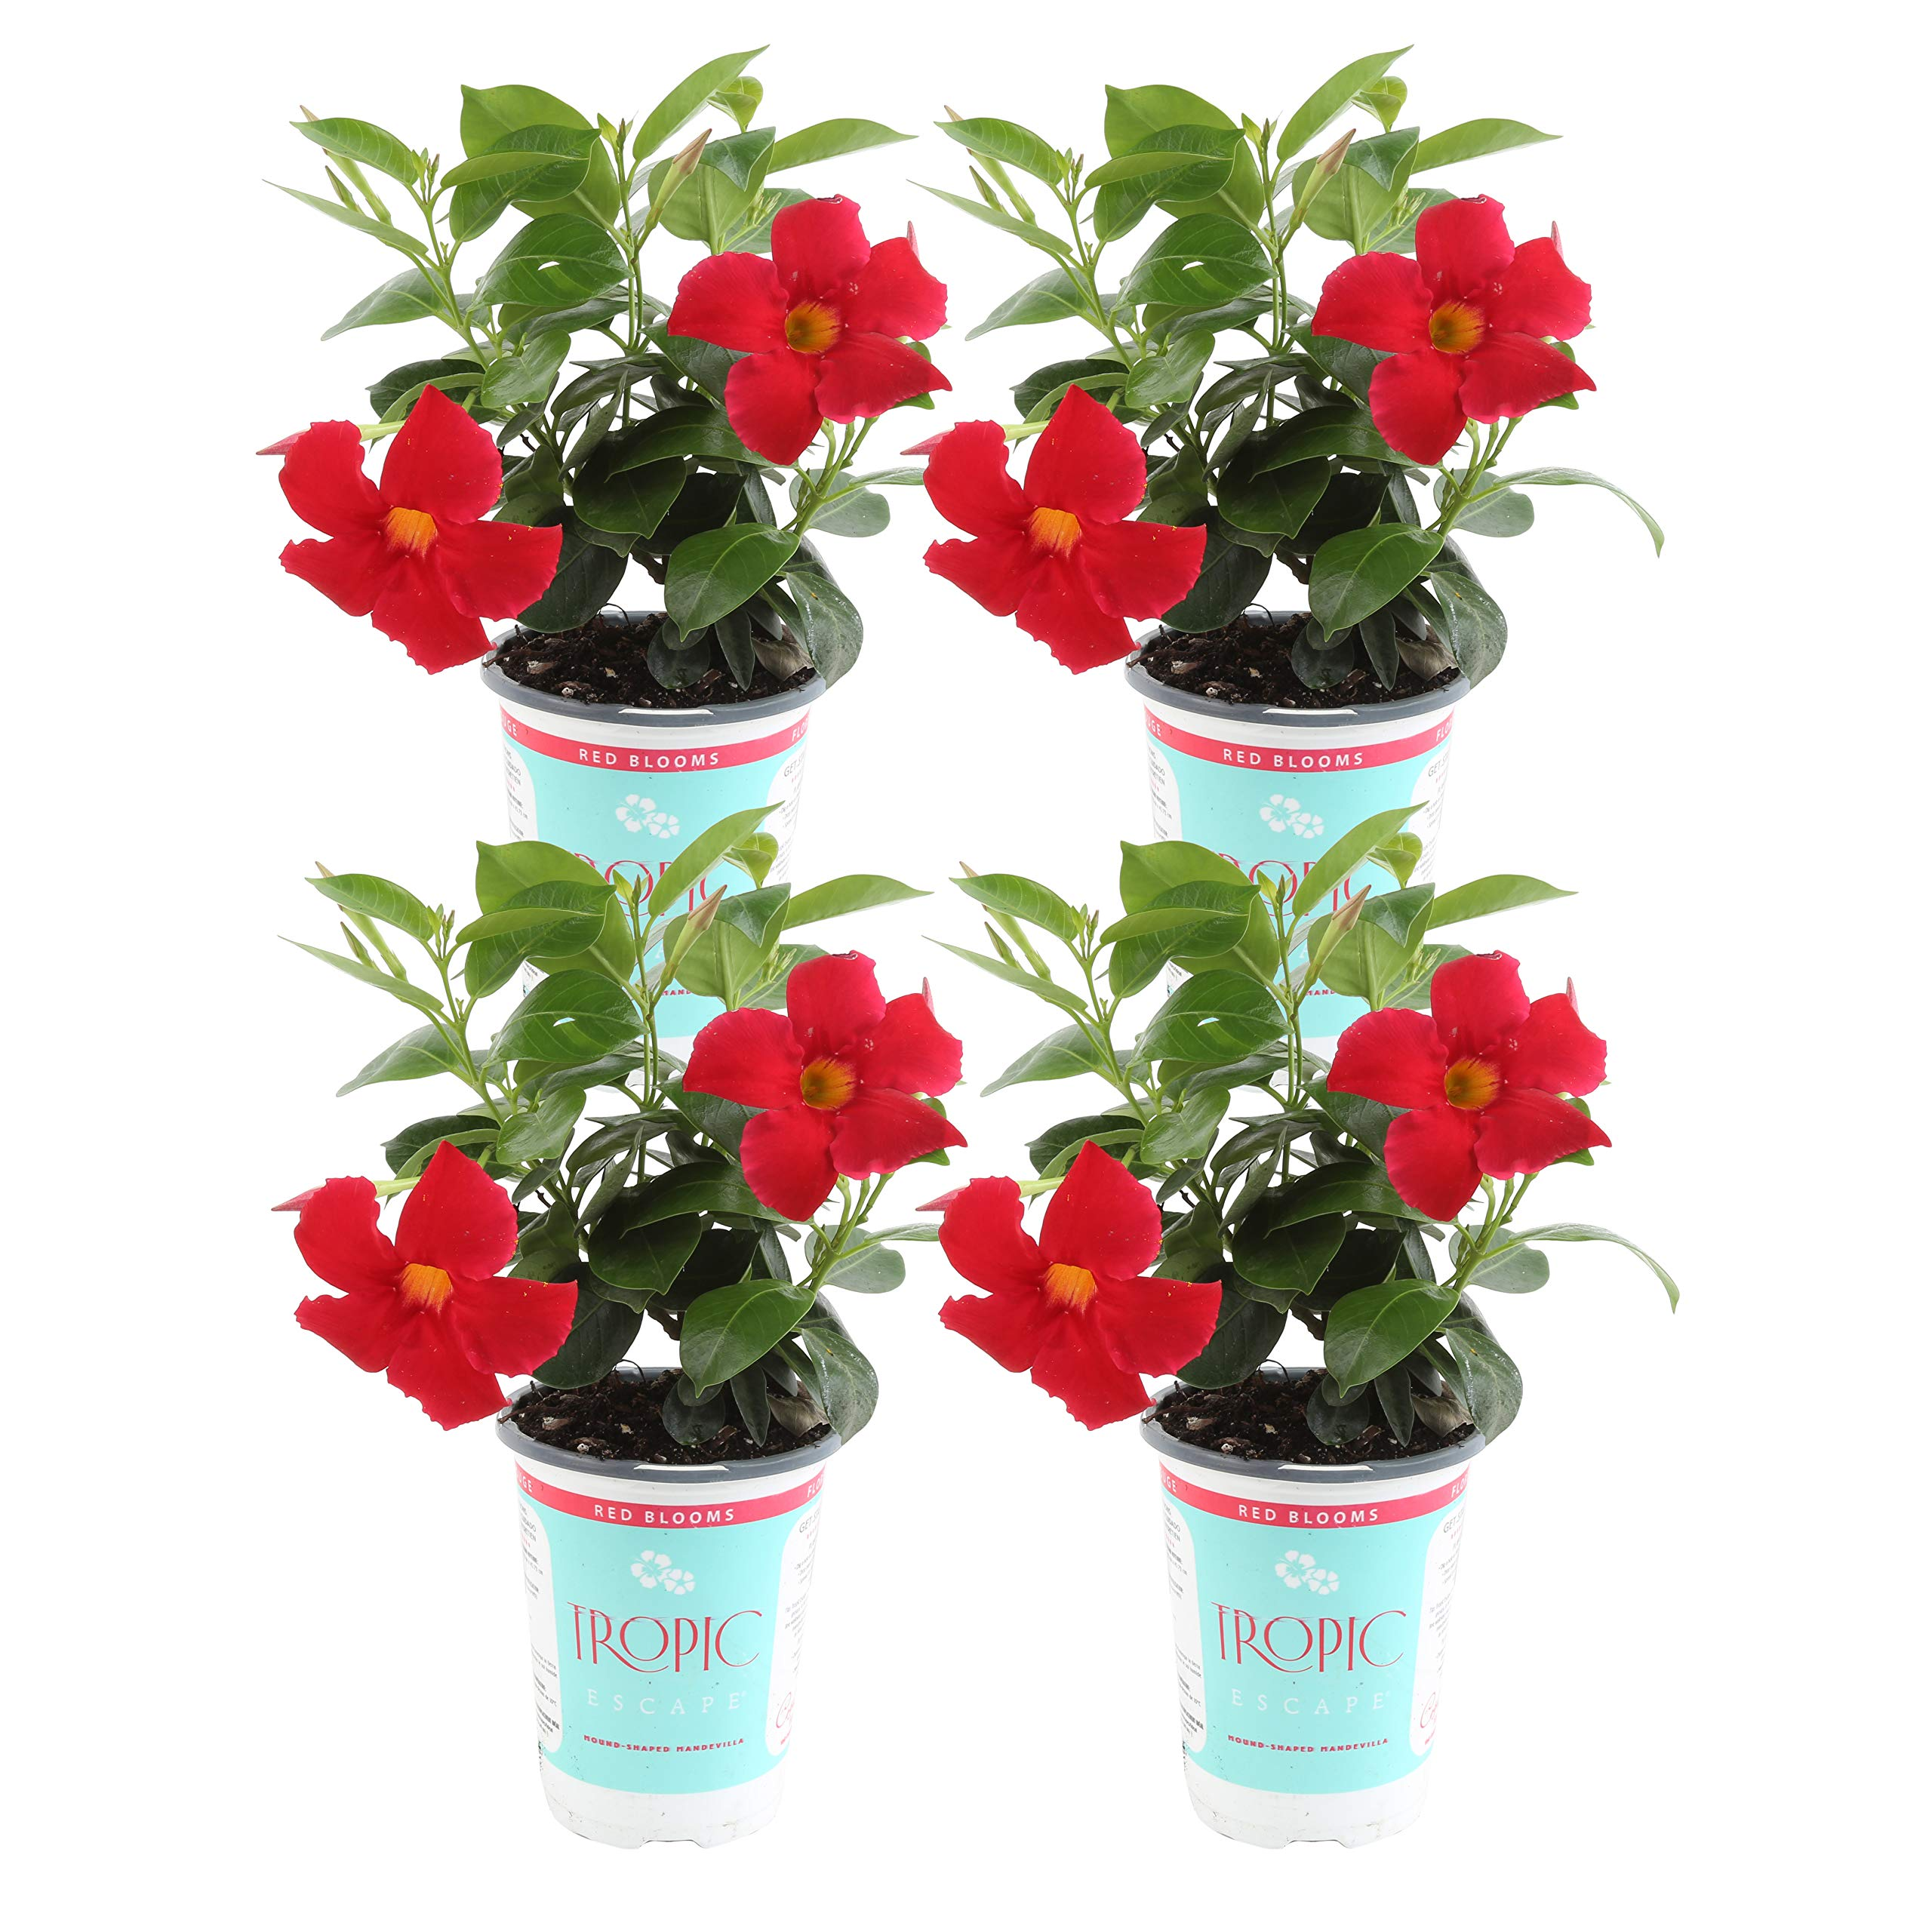 Costa Farms Live Mandevilla Outdoor Plant in in 1 QT Grower Pot, Red, 4 Pack by Costa Farms (Image #1)